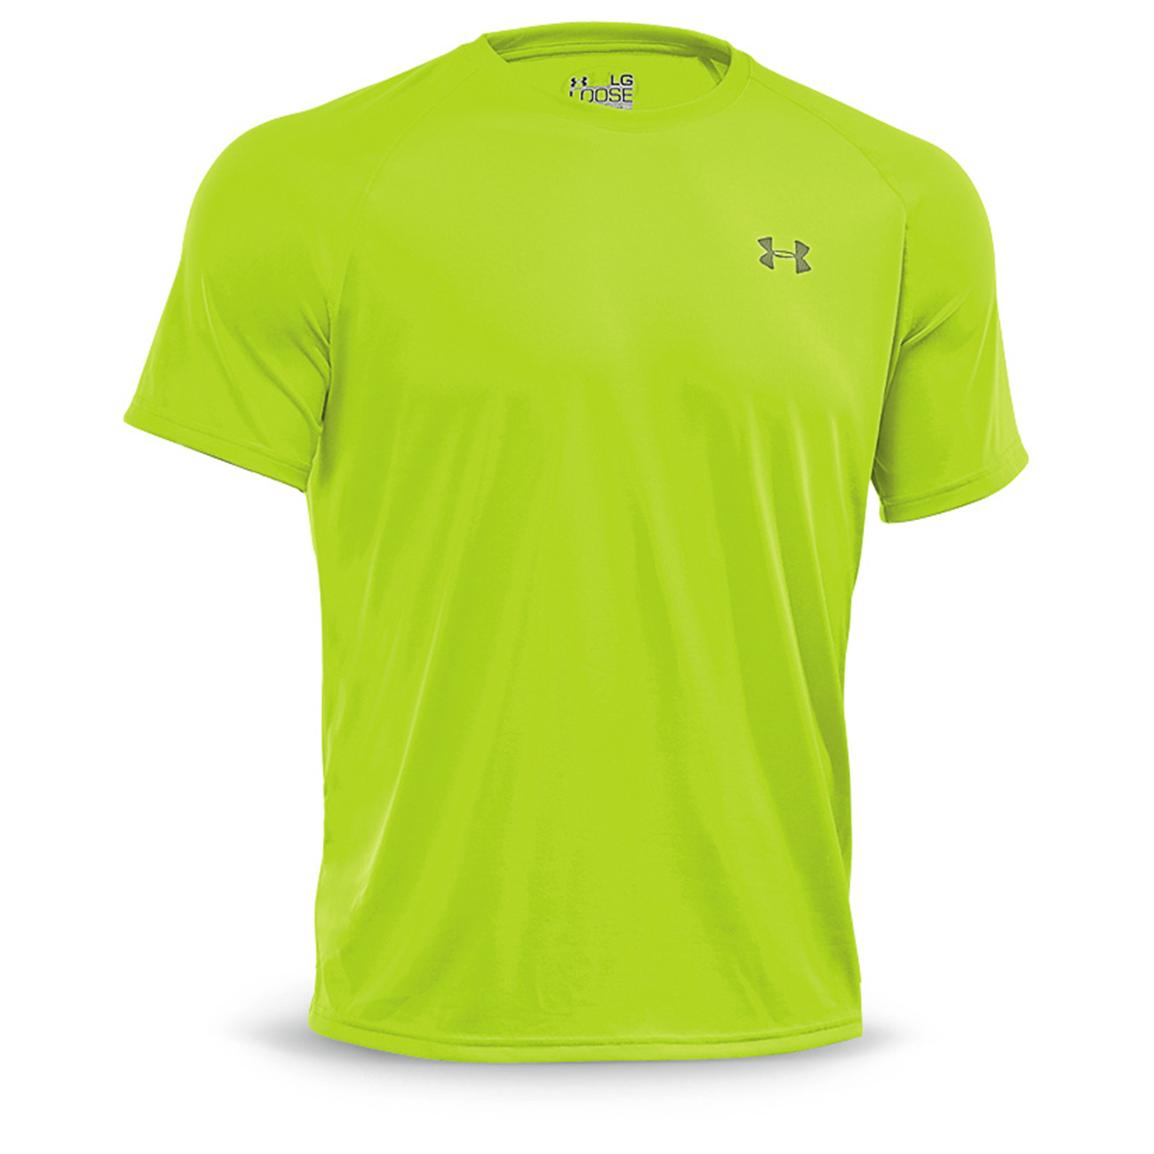 Under Armour Men's Tech Short-sleeved T-Shirt, Hi-vis Yellow / Storm